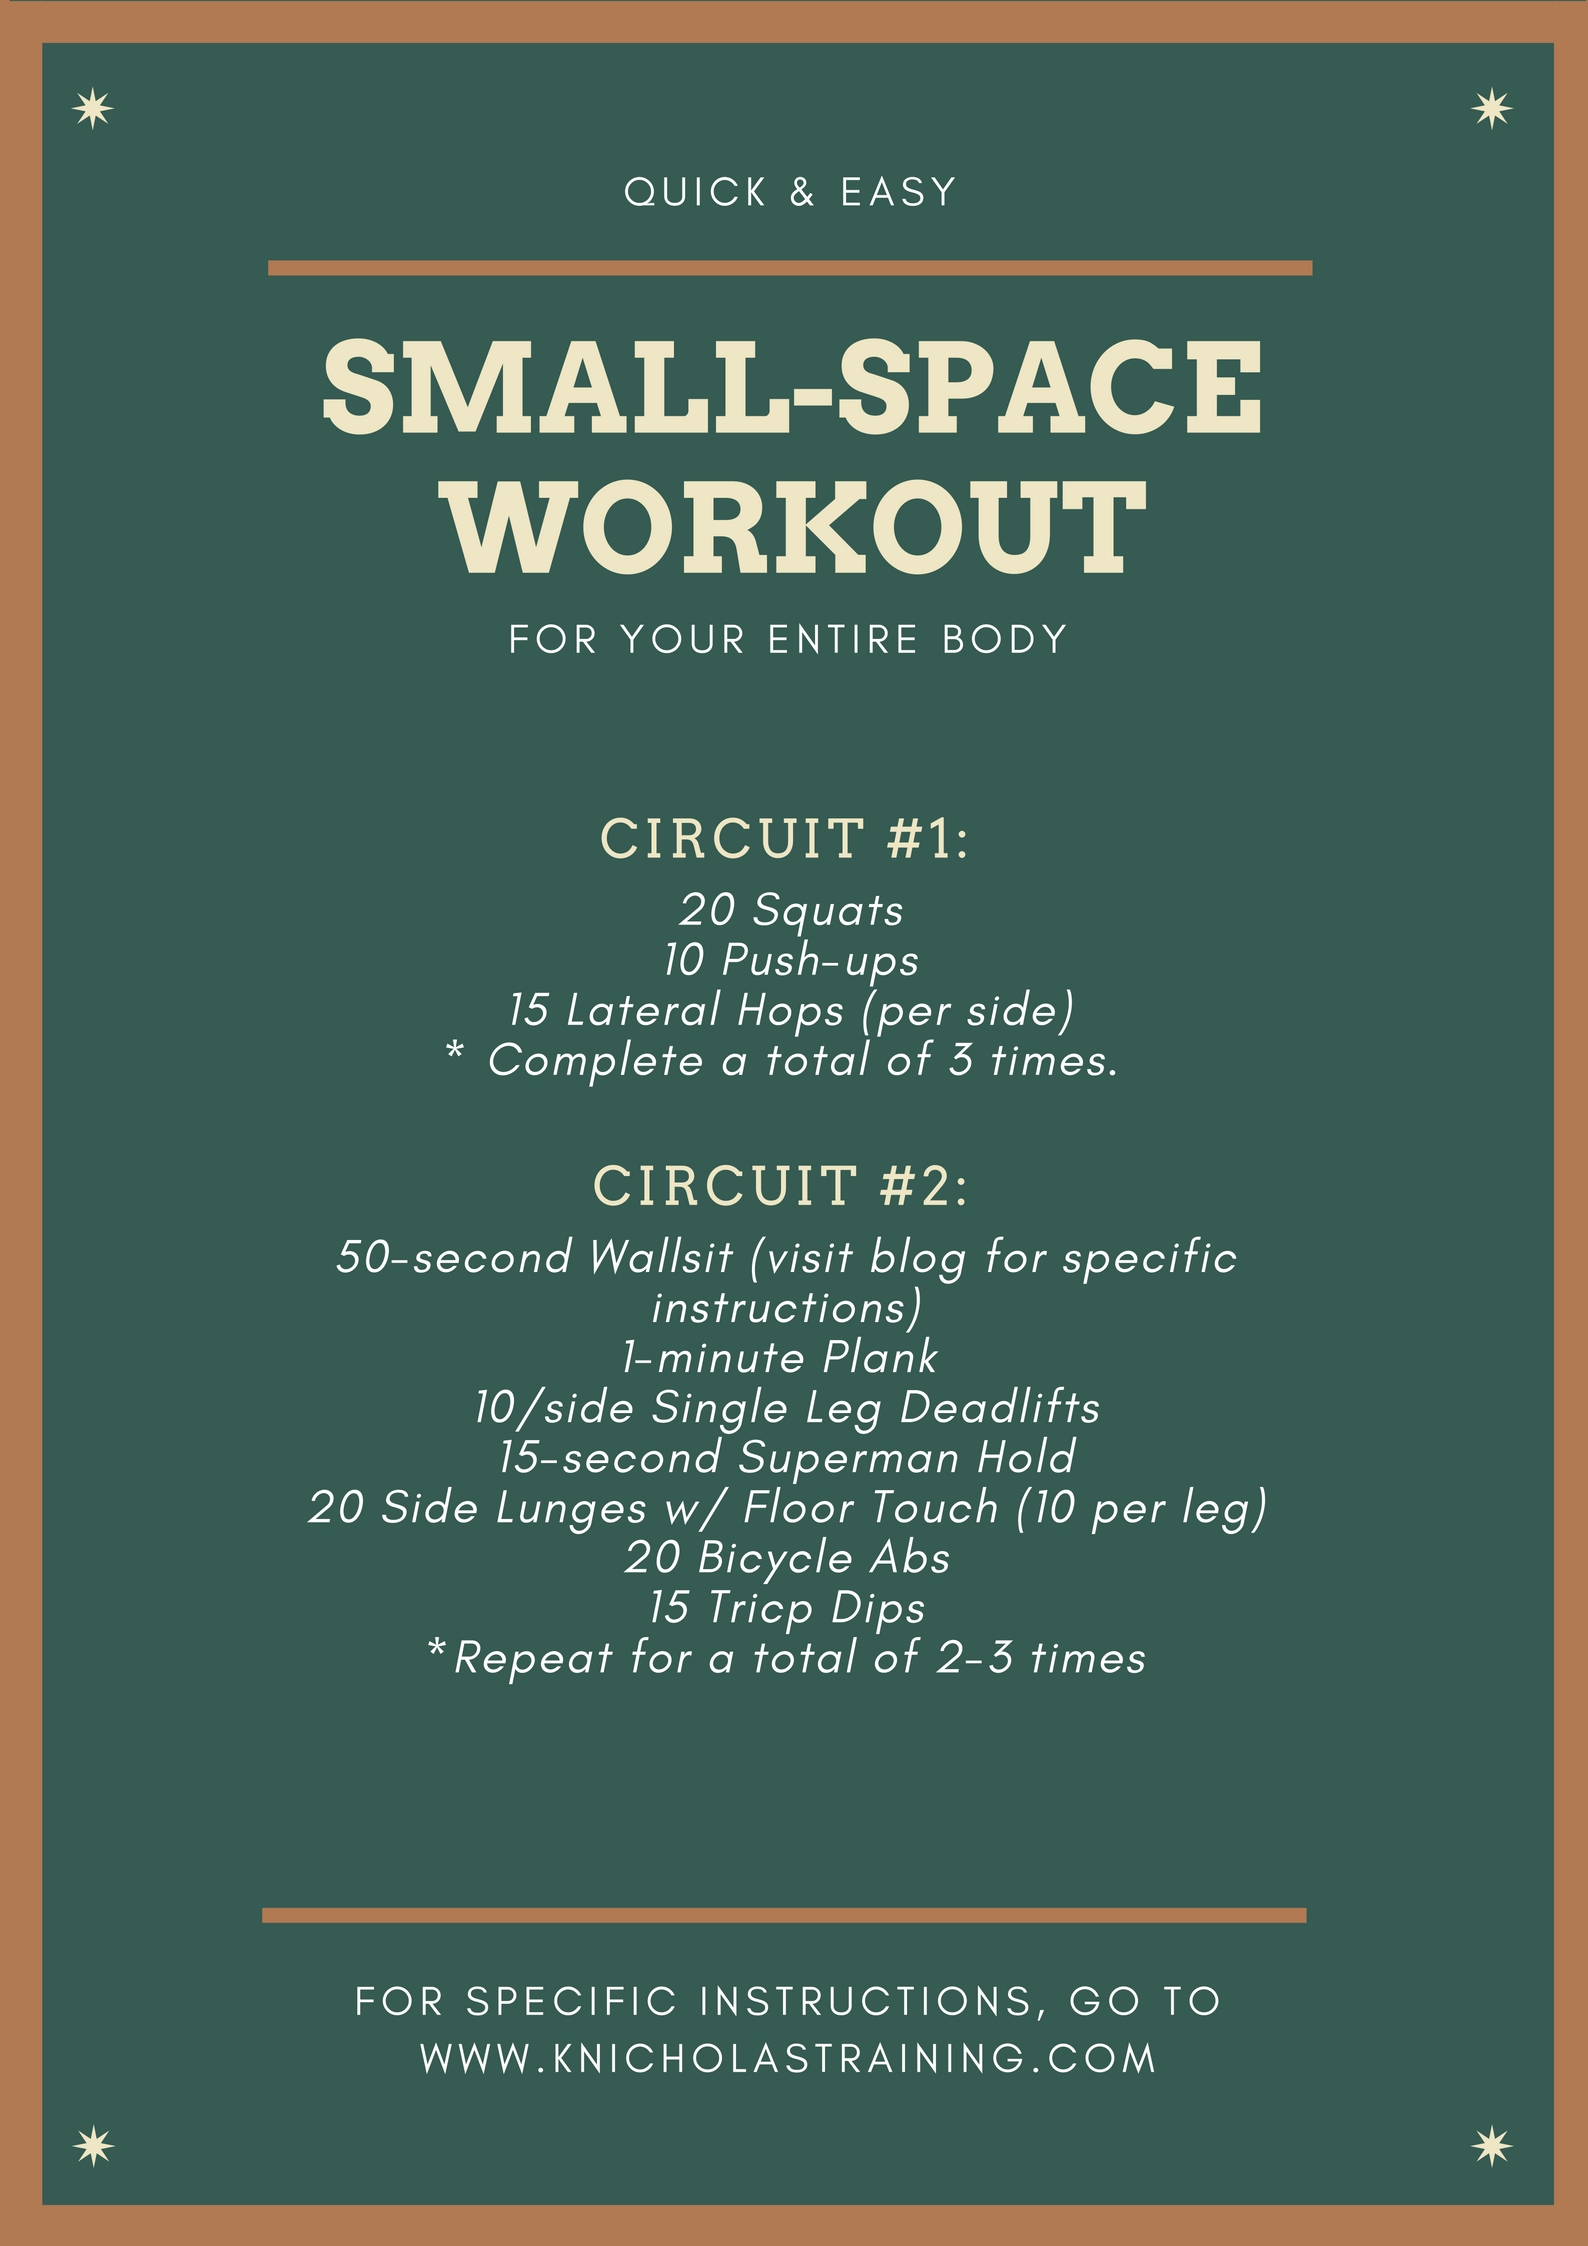 Small Space Workout.jpg